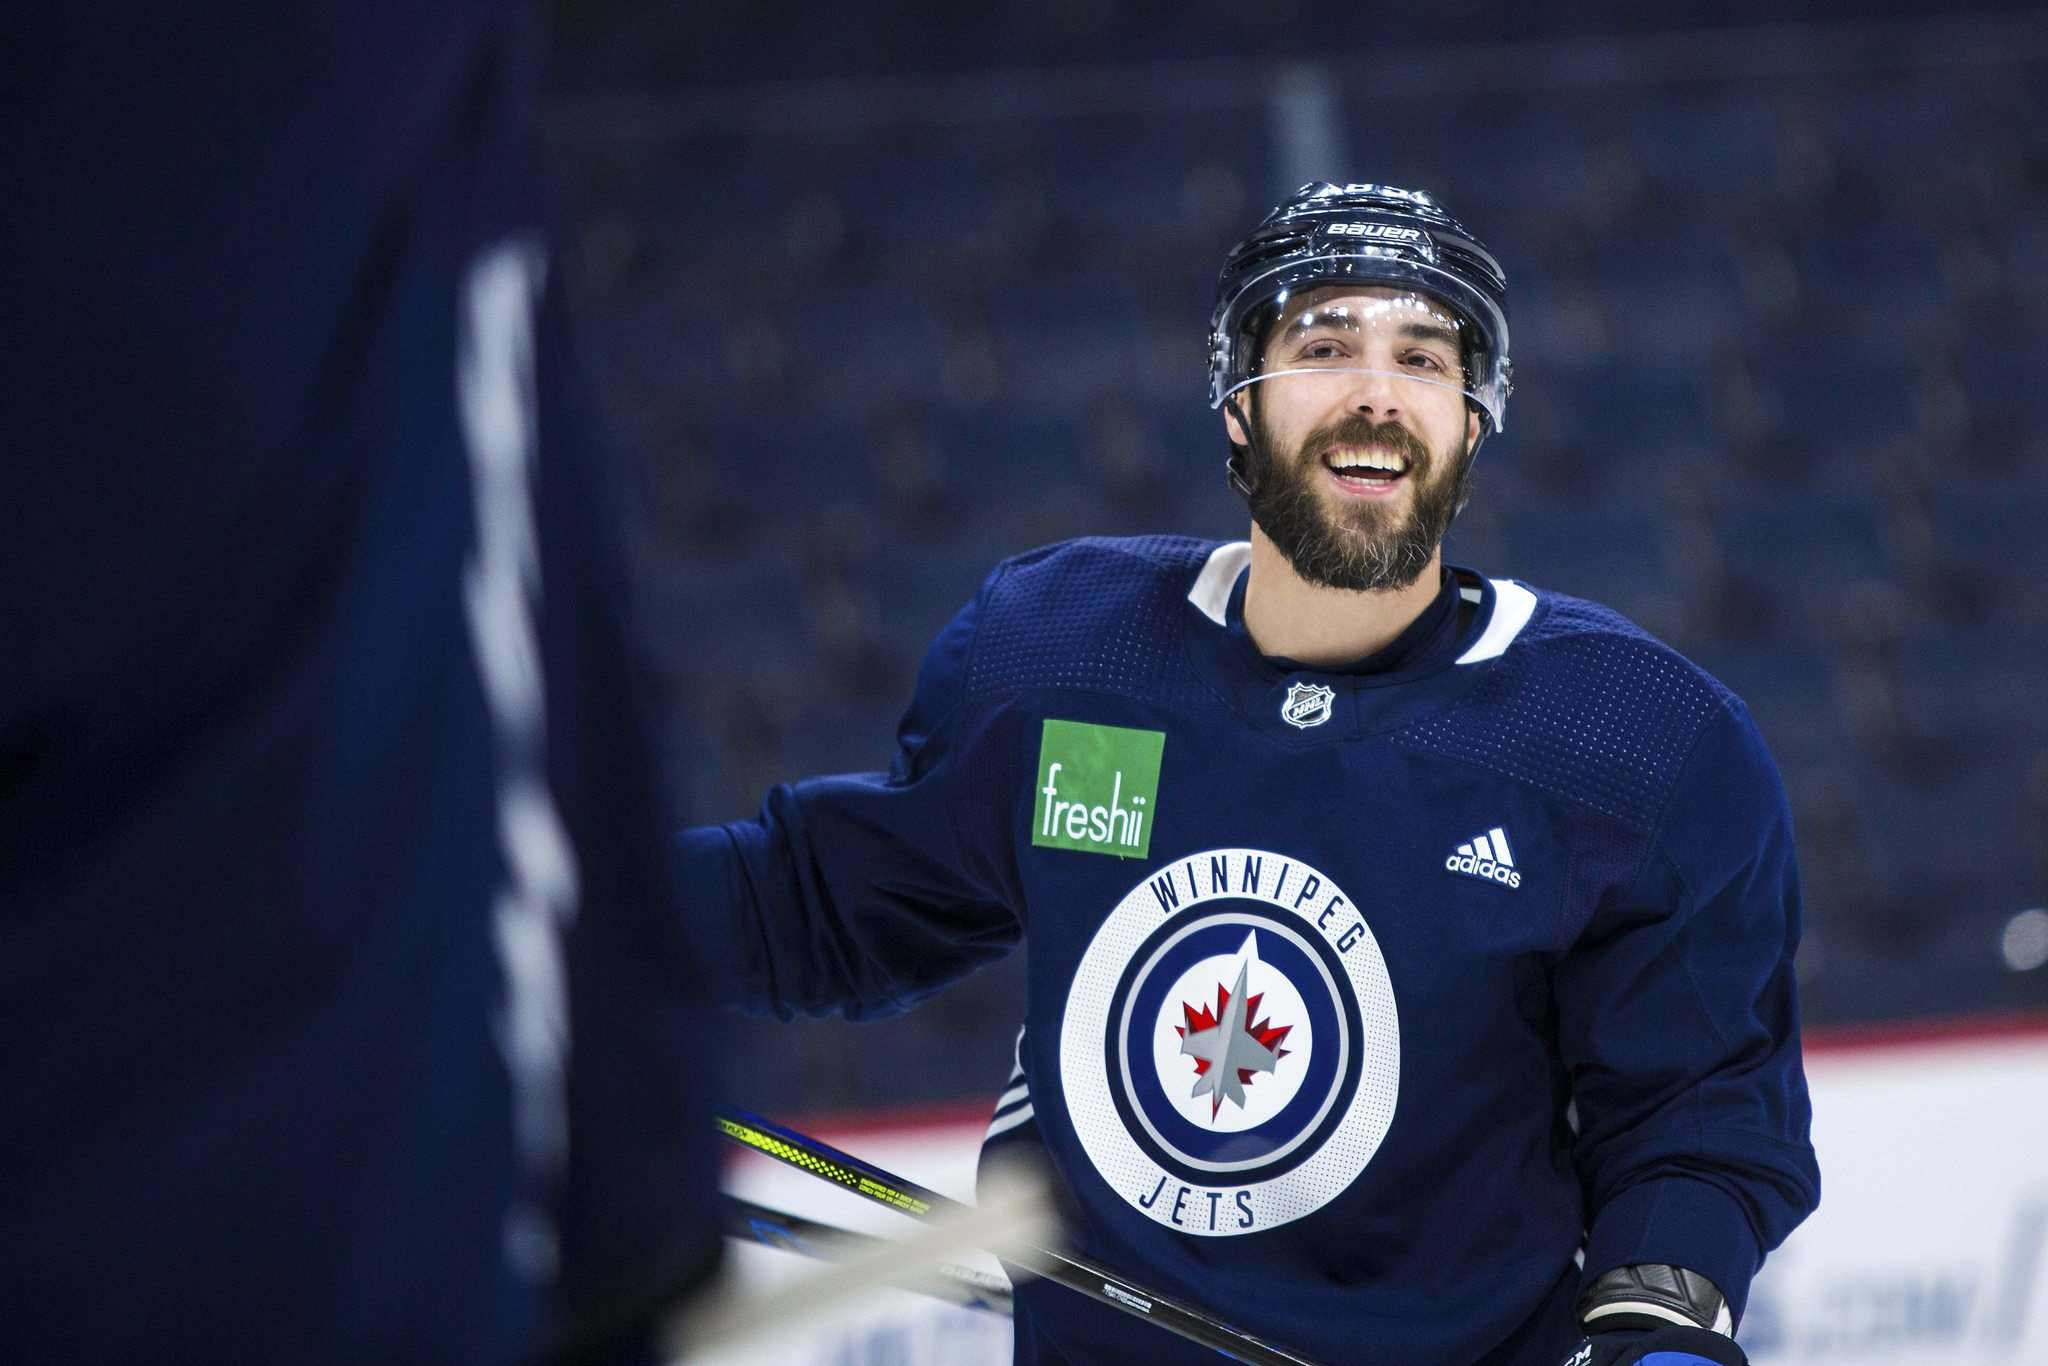 Mathieu Perreault said he had spoken to representatives of the league on the matter but hadn't changed his mind on the ruling. (Mikaela MacKenzie / Free Press files)</p></p>